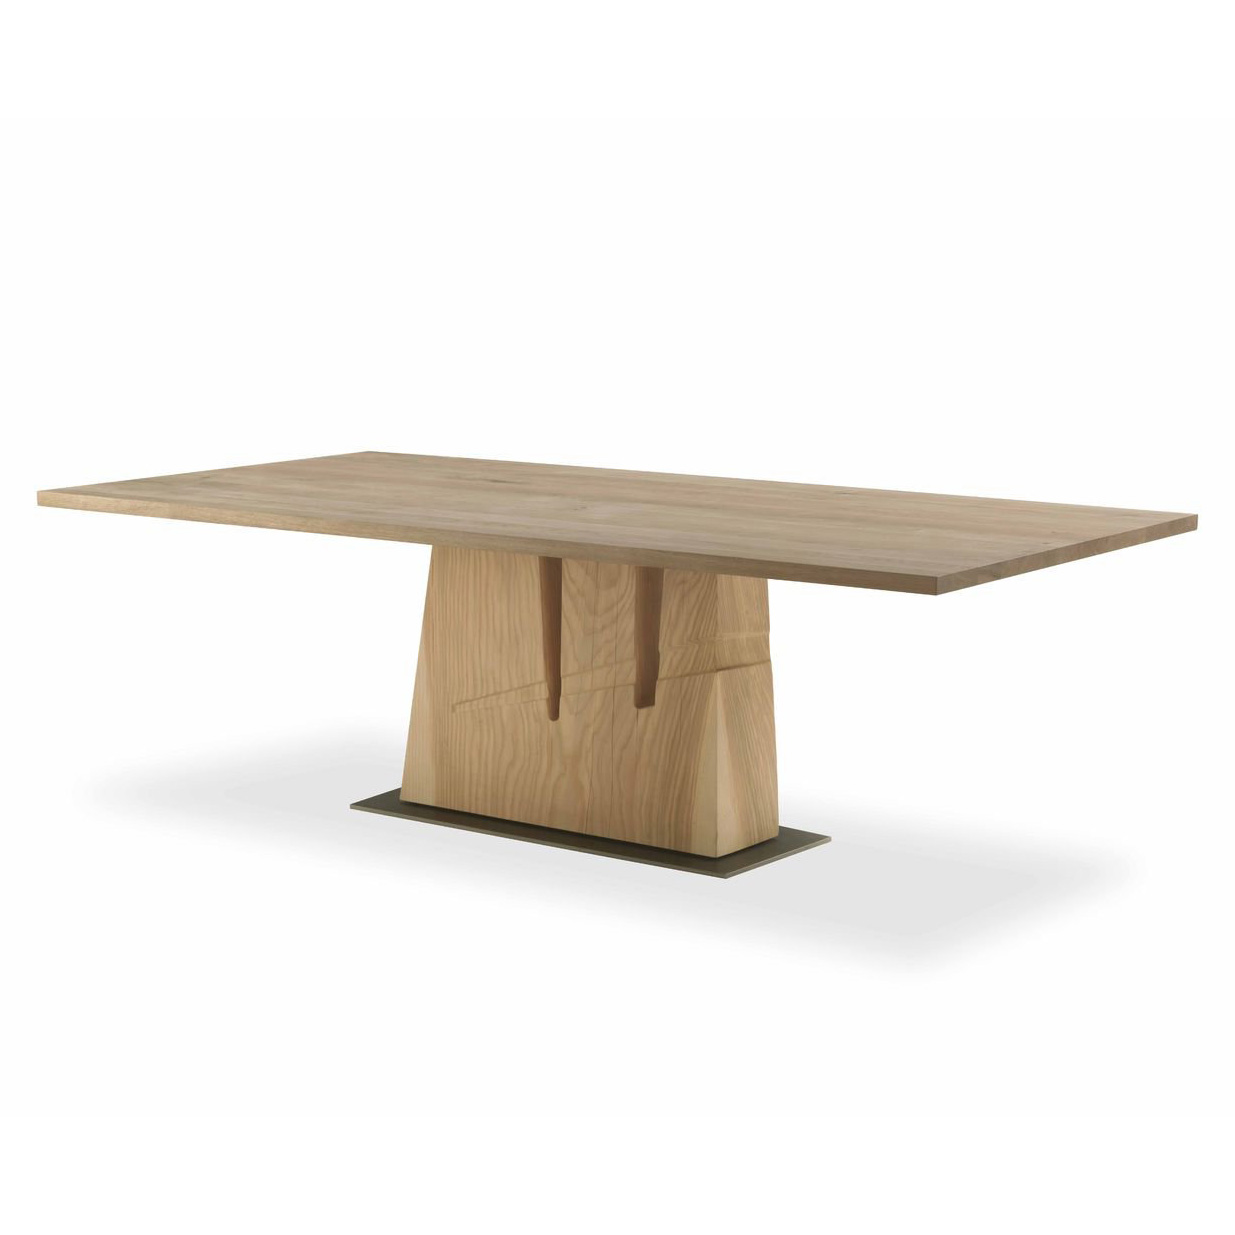 Hache dining table from Riva 1920